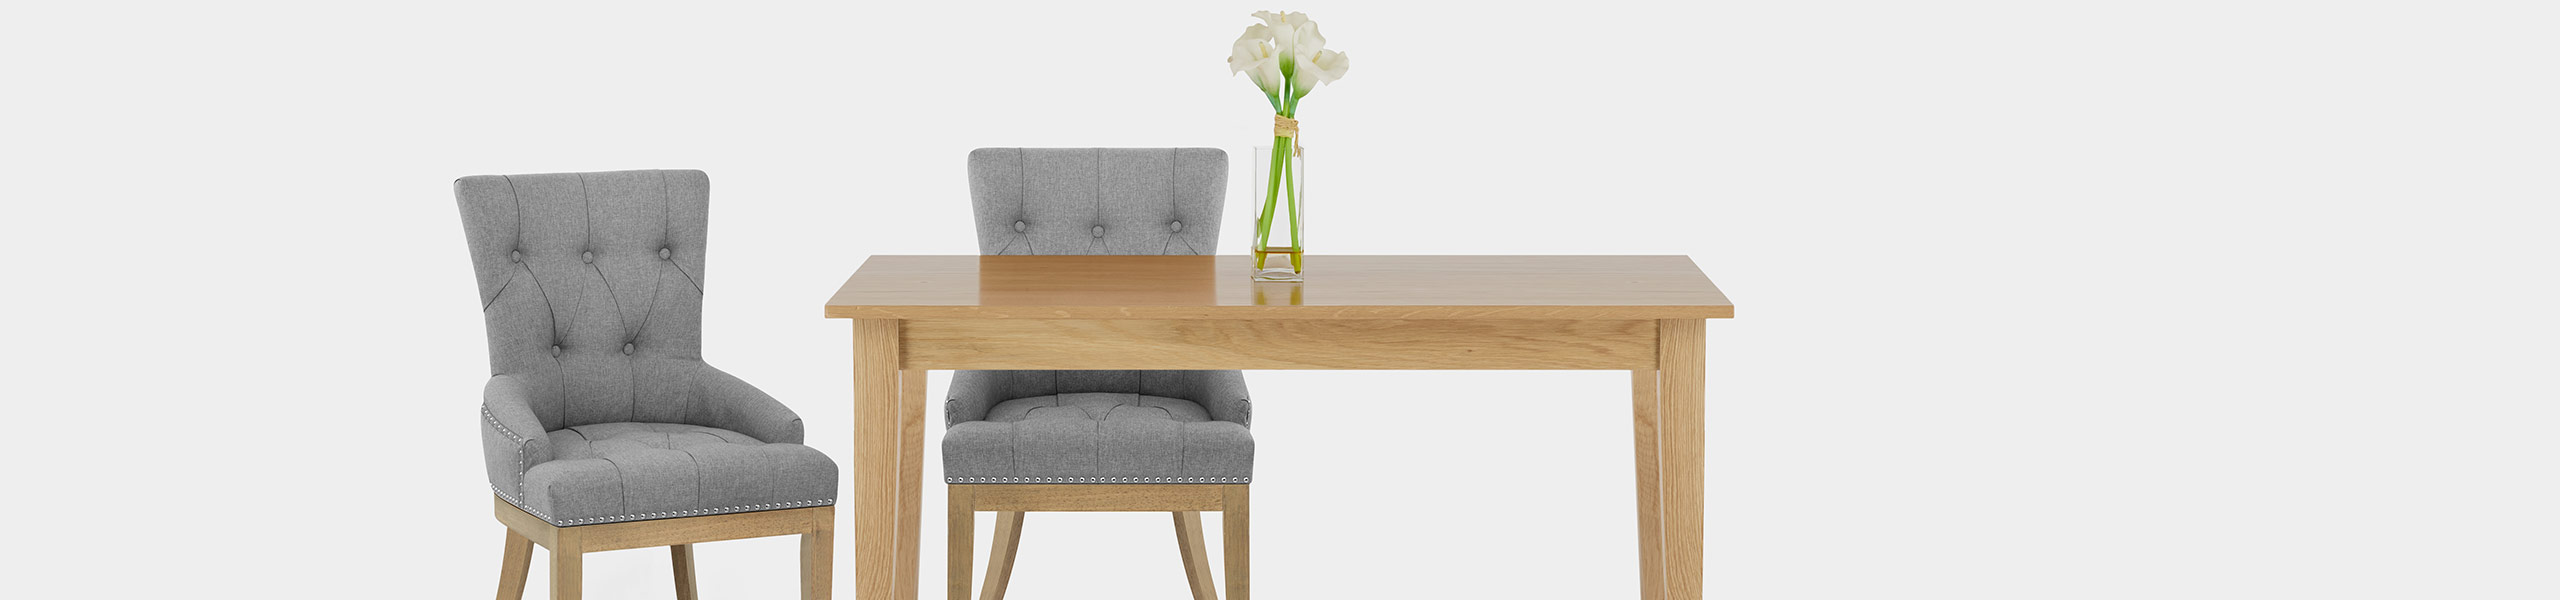 Knightsbridge Oak Chair Grey Fabric Video Banner